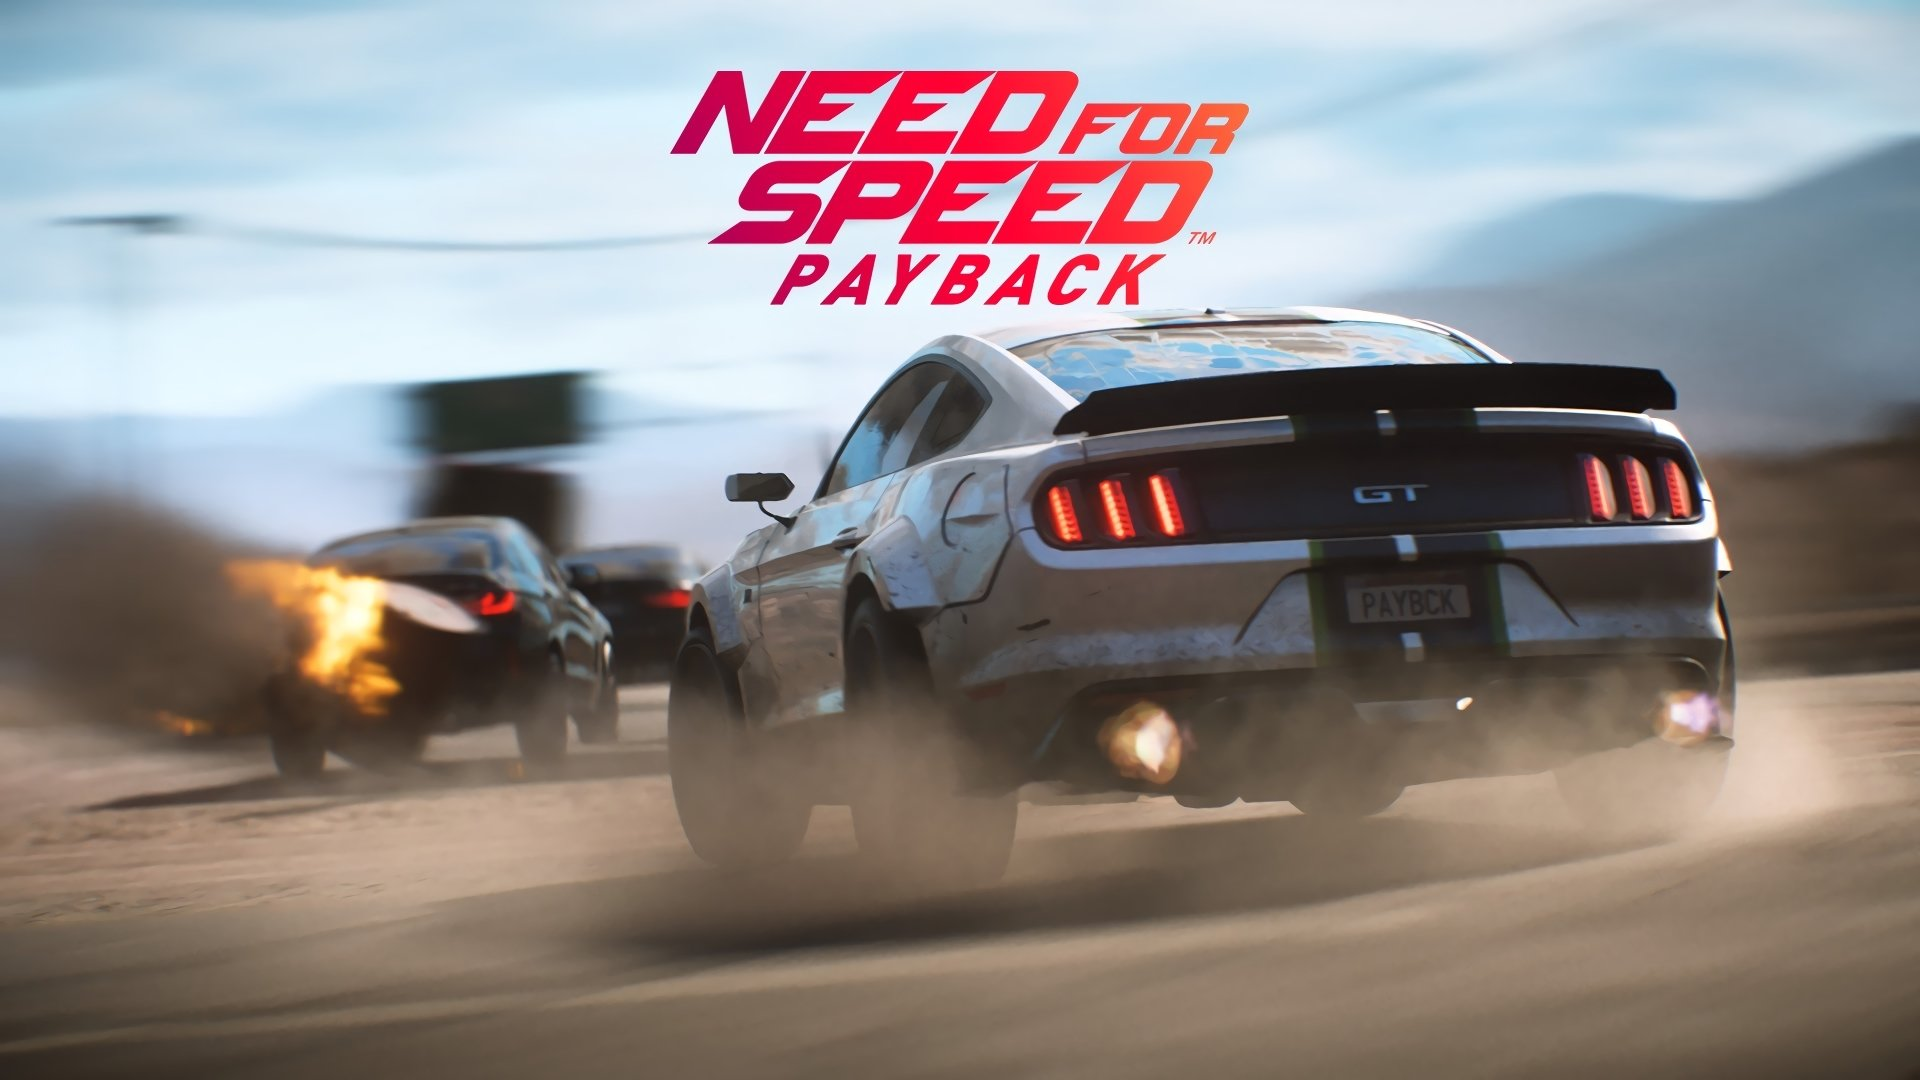 25 Need For Speed Payback Wallpapers On Wallpapersafari